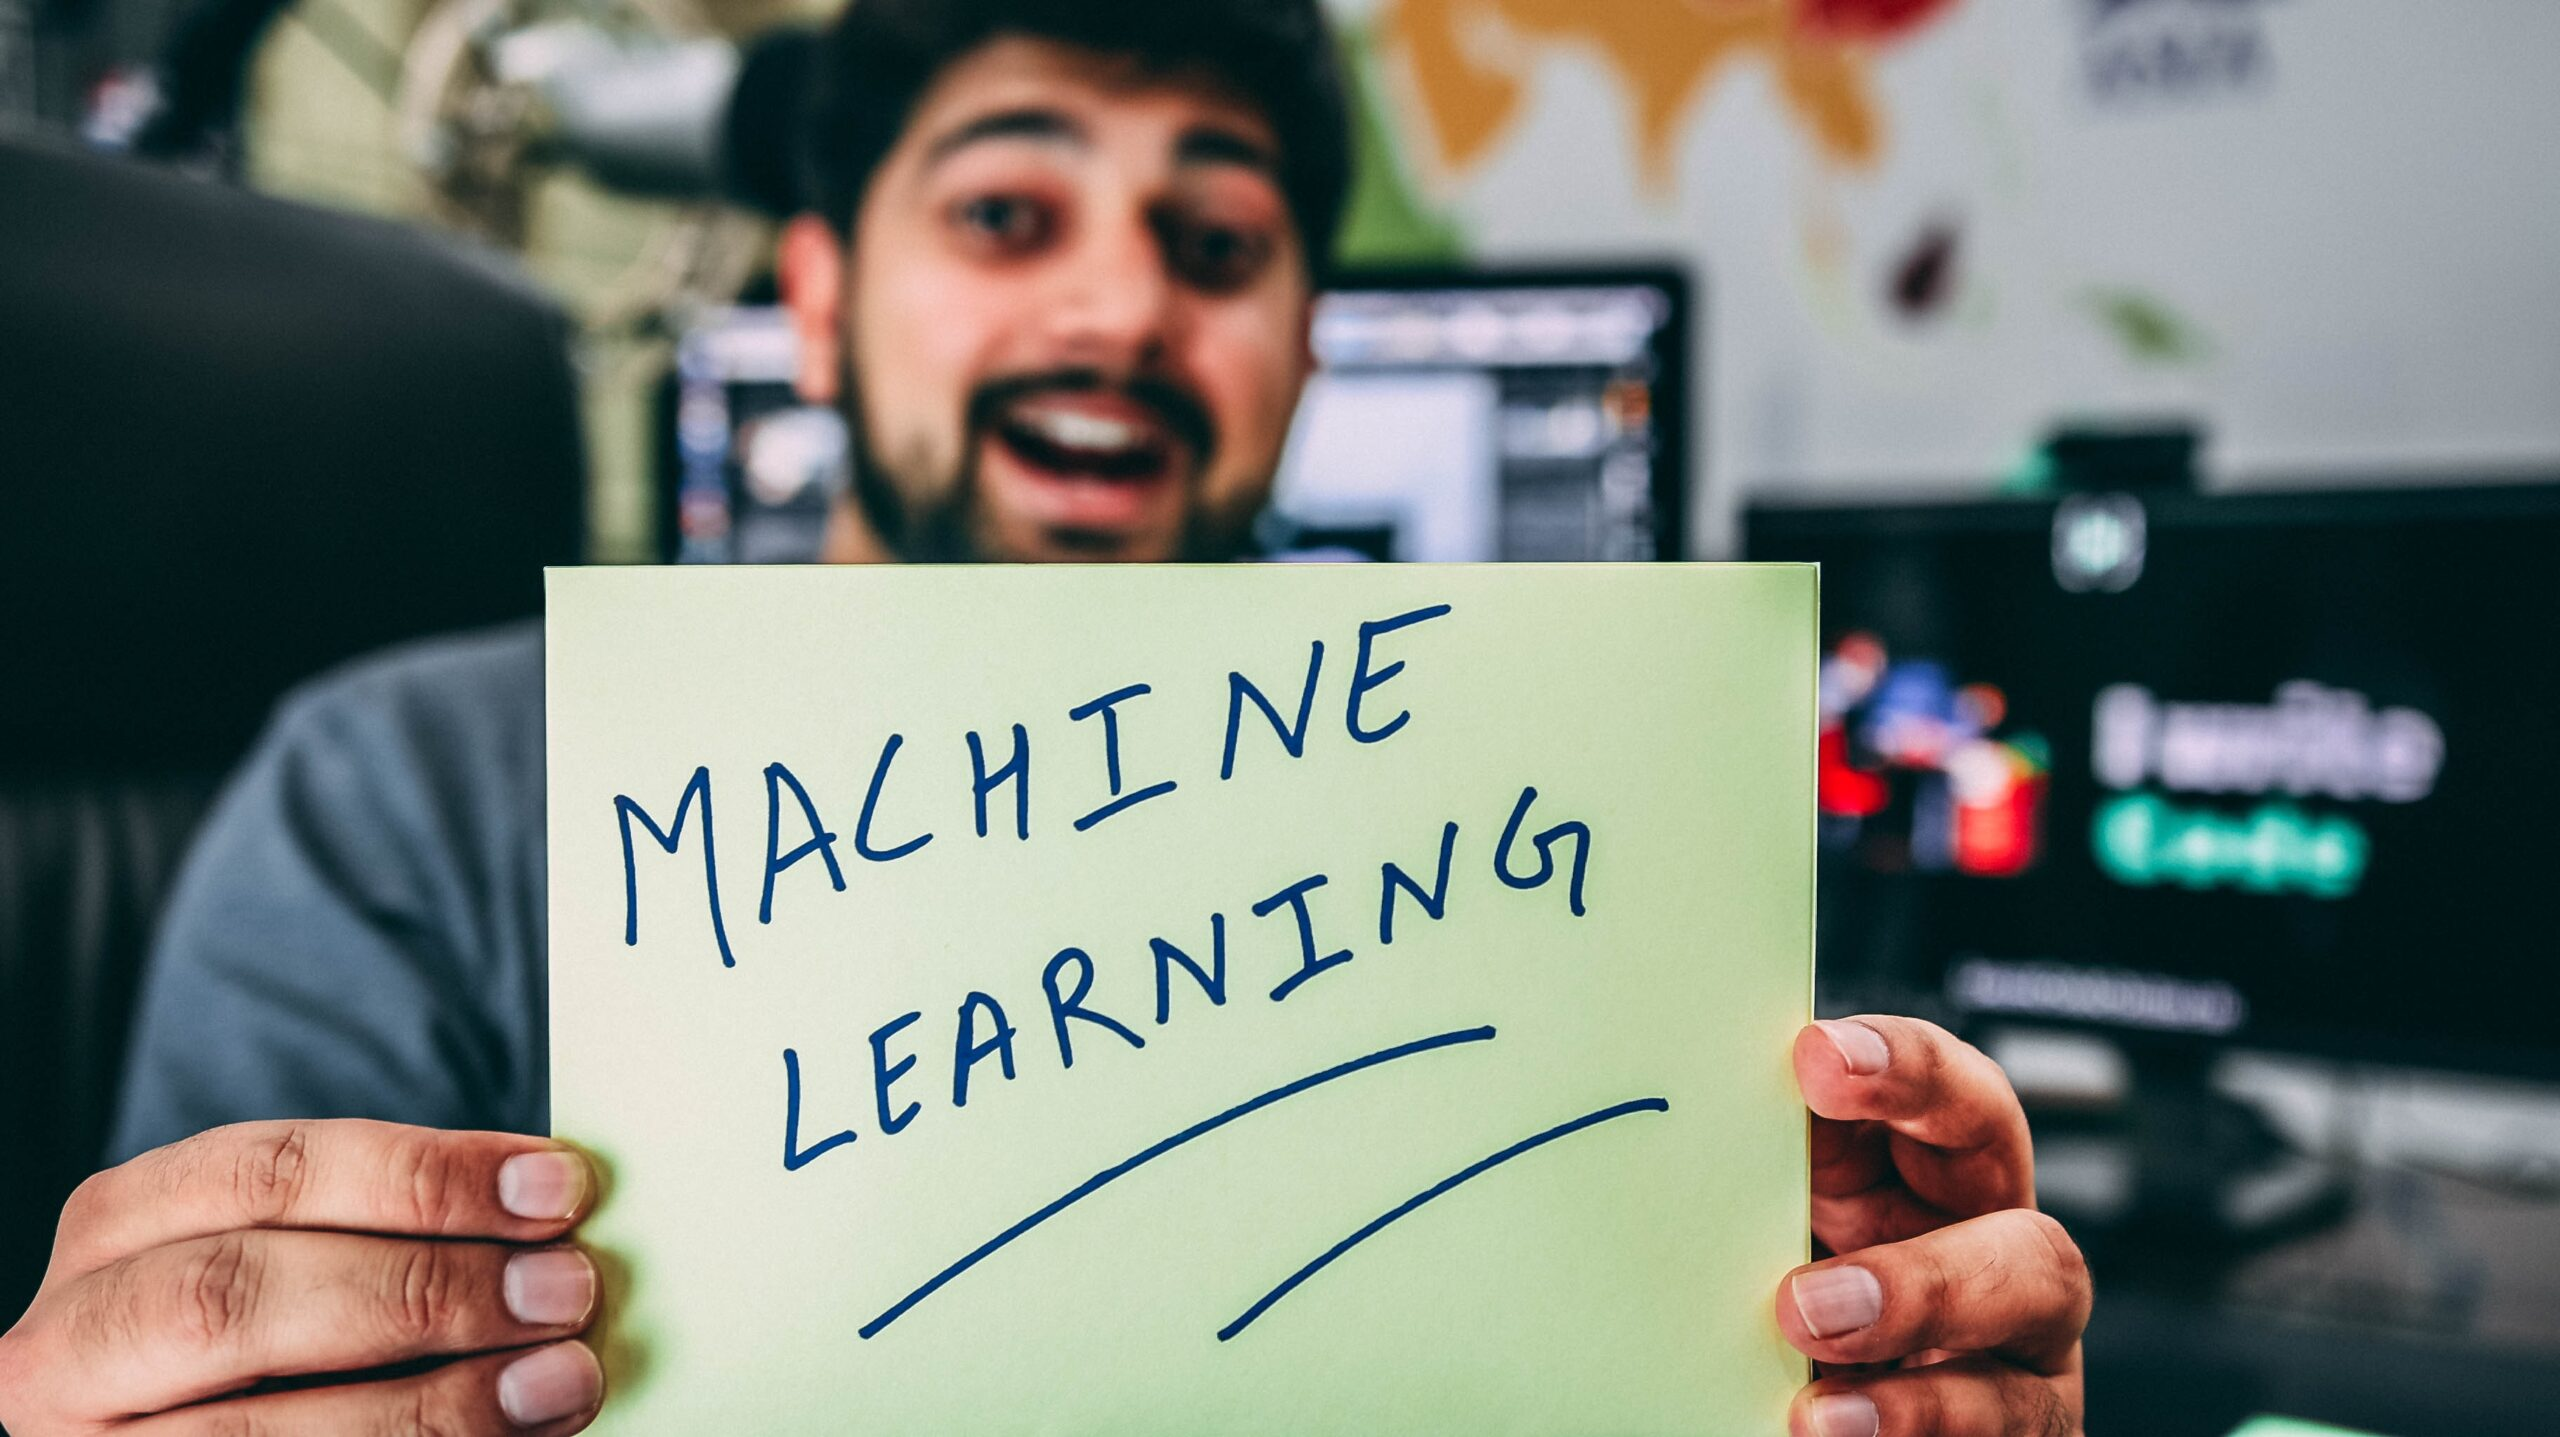 Applications of Machine Learning in Pharma and Medicine